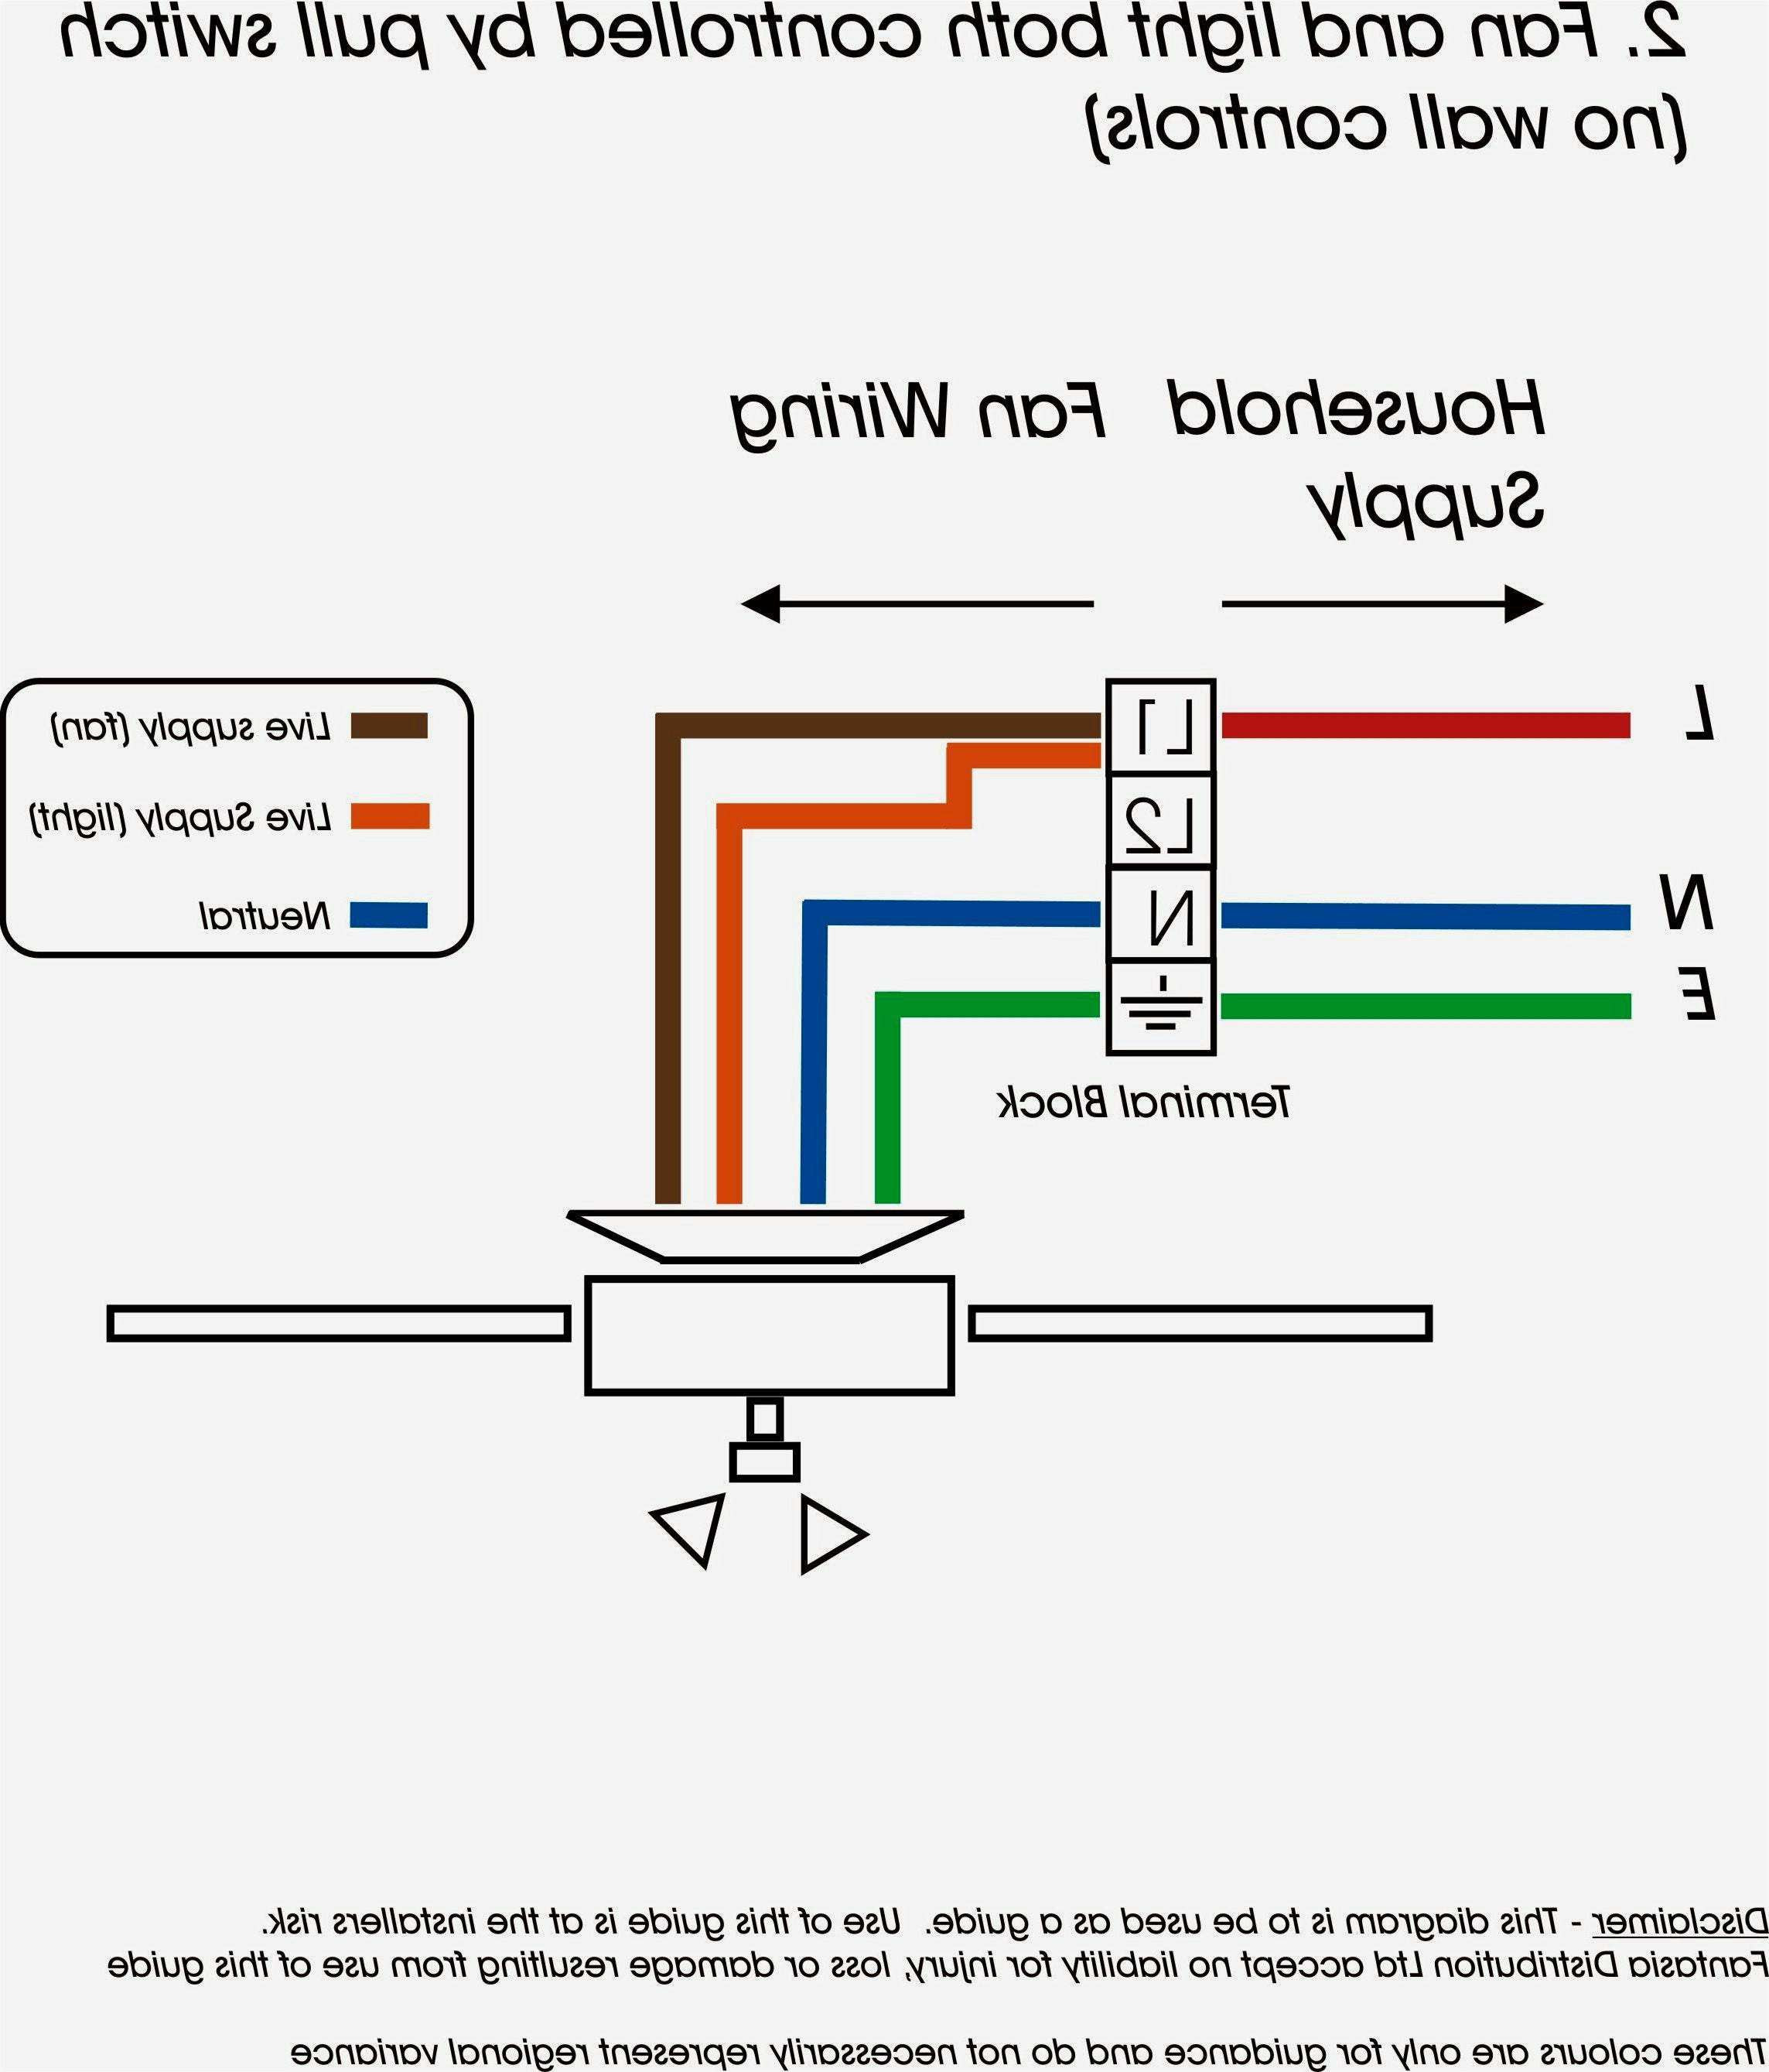 24vdc relay wiring diagram Download-8 Pin Ice Cube Relay Wiring Diagram Wiring Diagram 8 Pin Ice Cube Relay Save 8-t